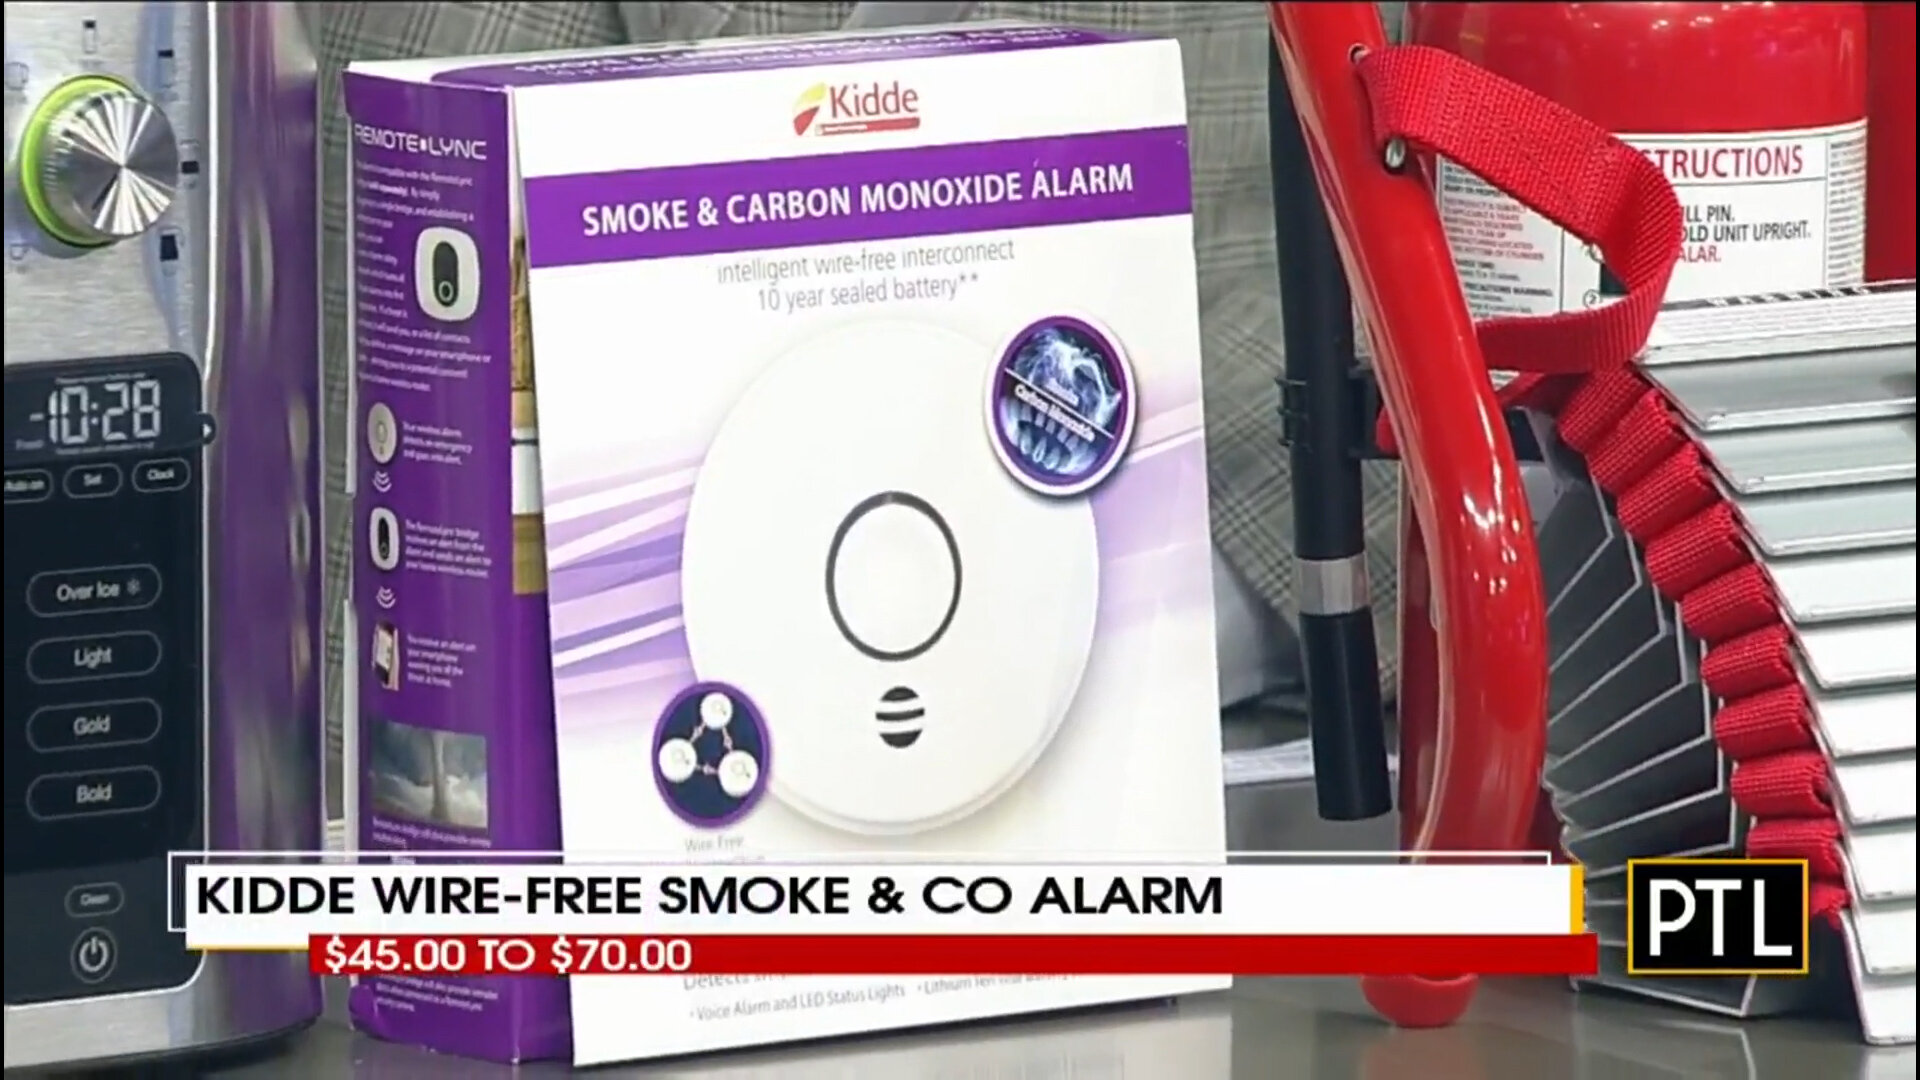 KIDDE INTELLIGENT WIRE-FREE INTERCONNECTED SMOKE & CO ALARM - $45.00 to $70.00Shop Now